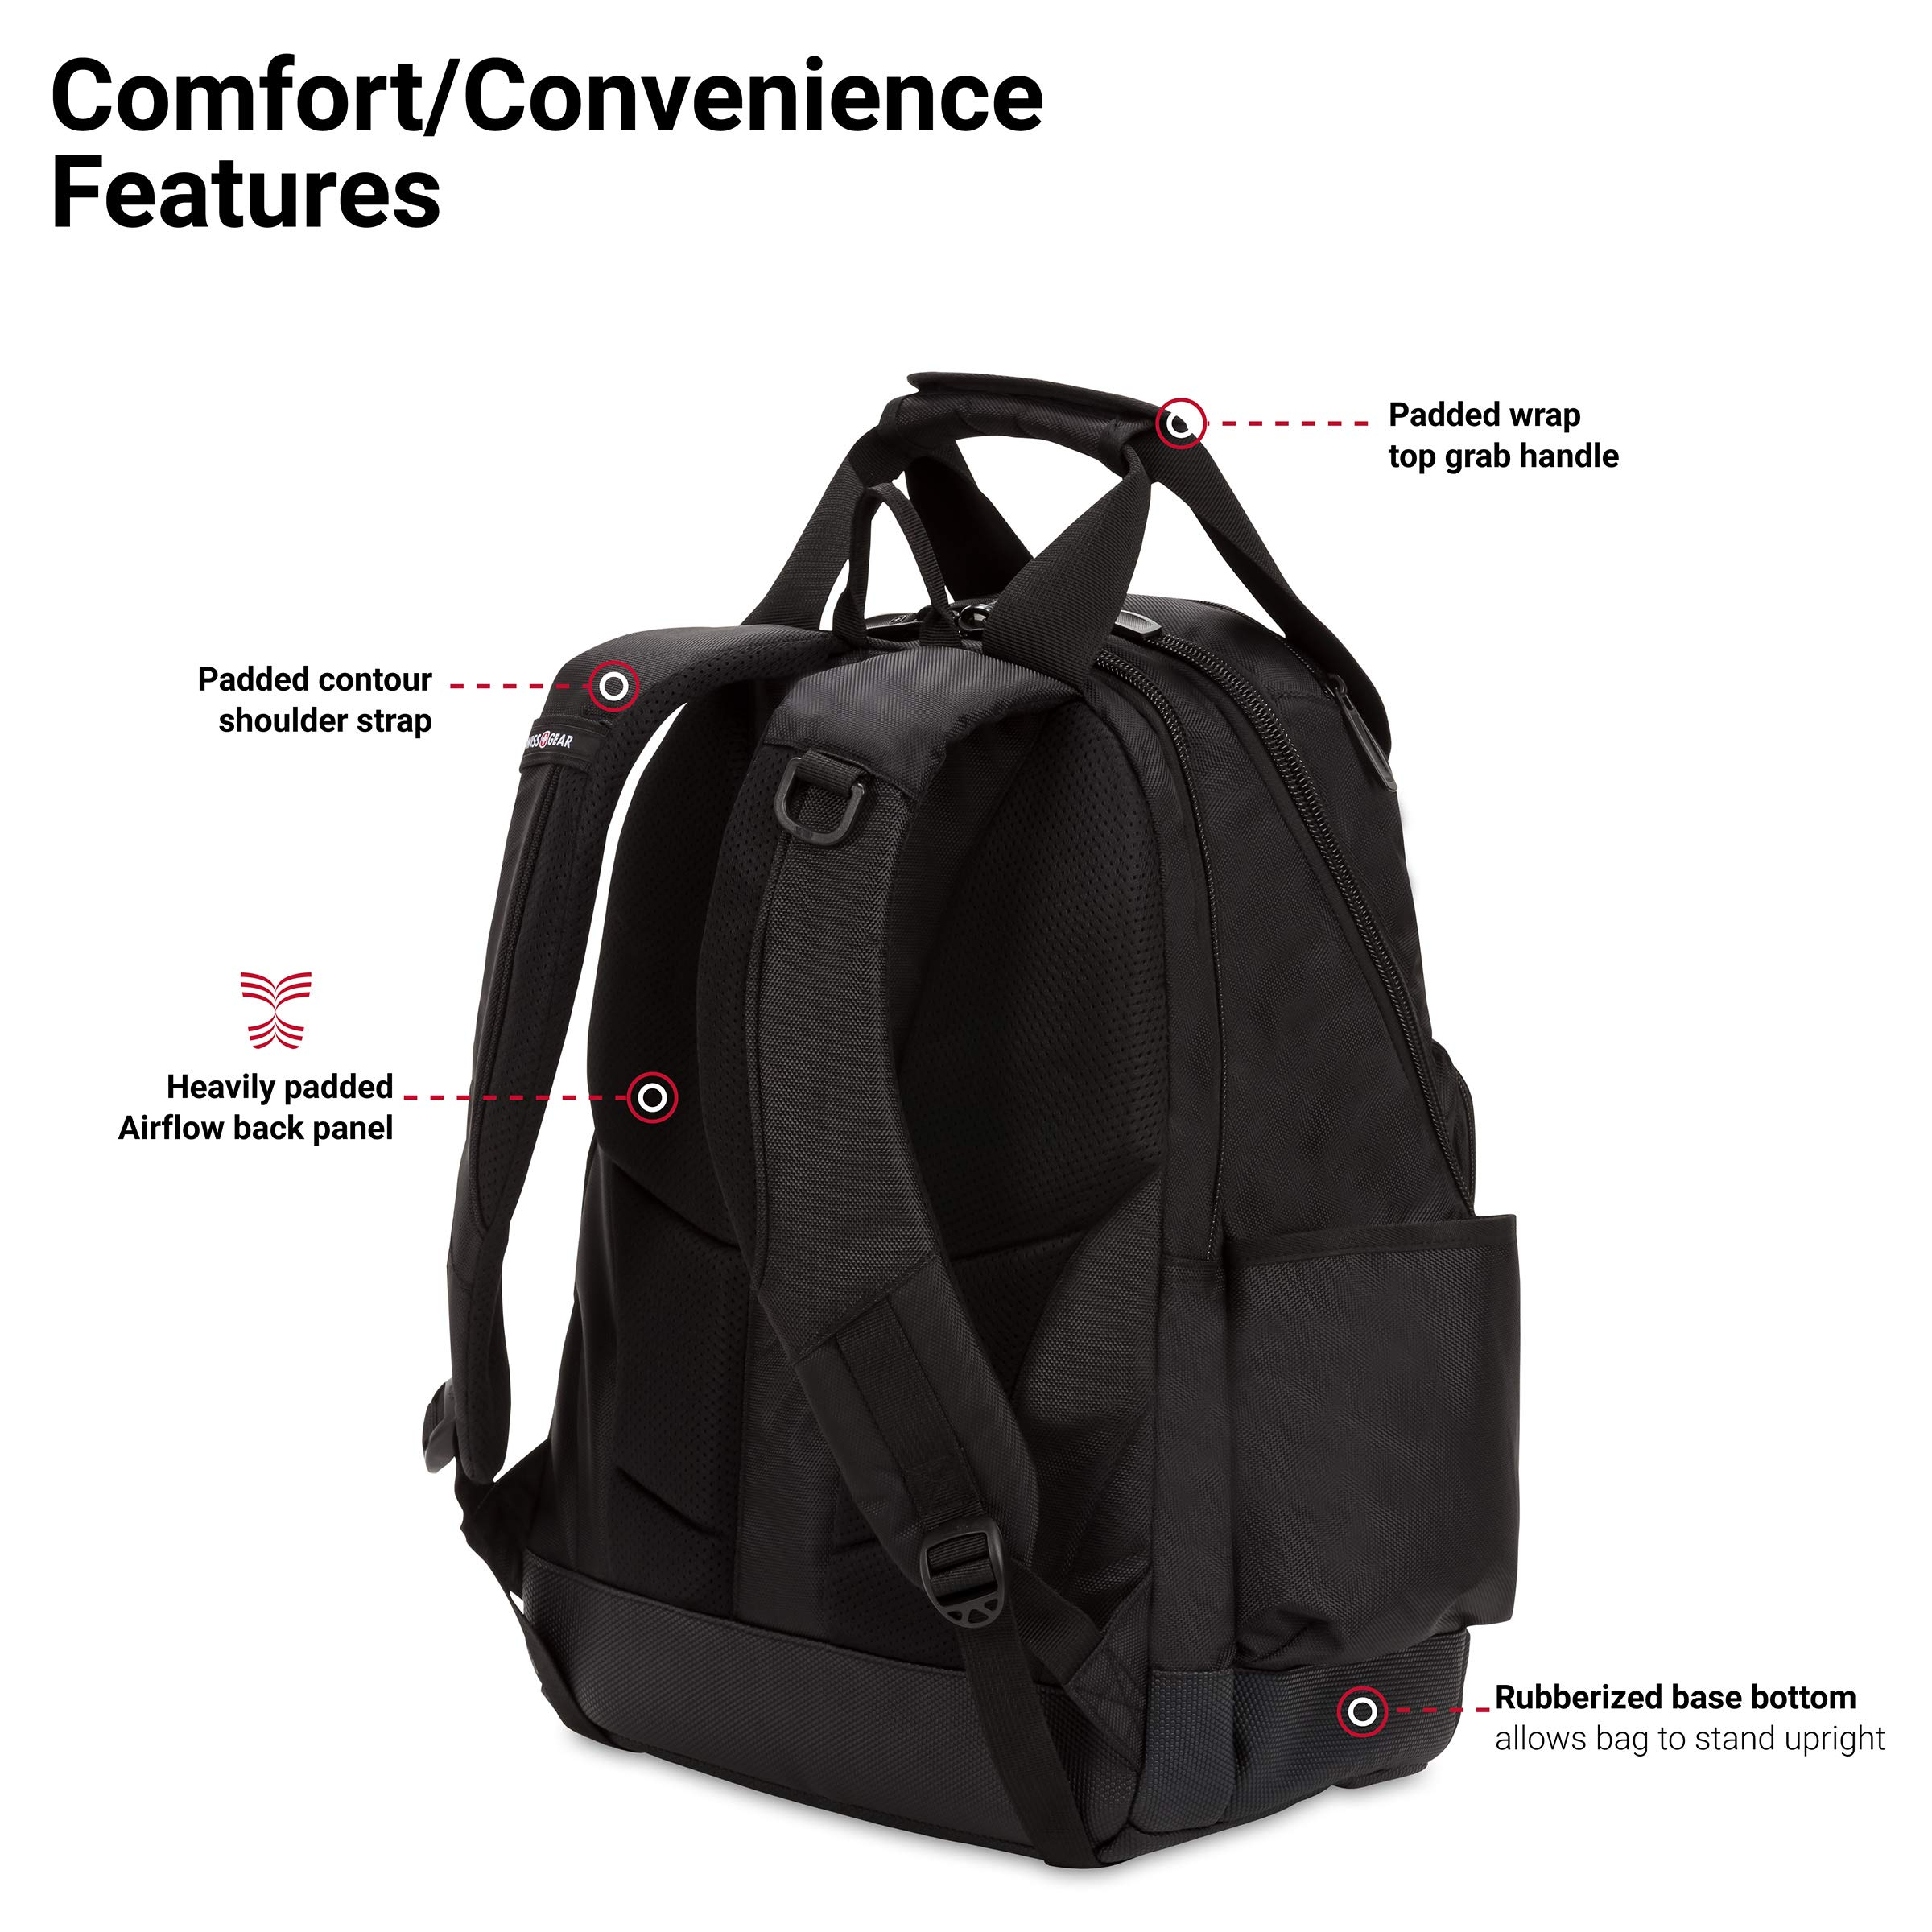 SWISSGEAR 2767 Large Durable Work Pack Tool Backpack With Padded Laptop Compartment | Tool Storage, Part Organization, Wet/Dry Pocket - Black by SwissGear (Image #2)